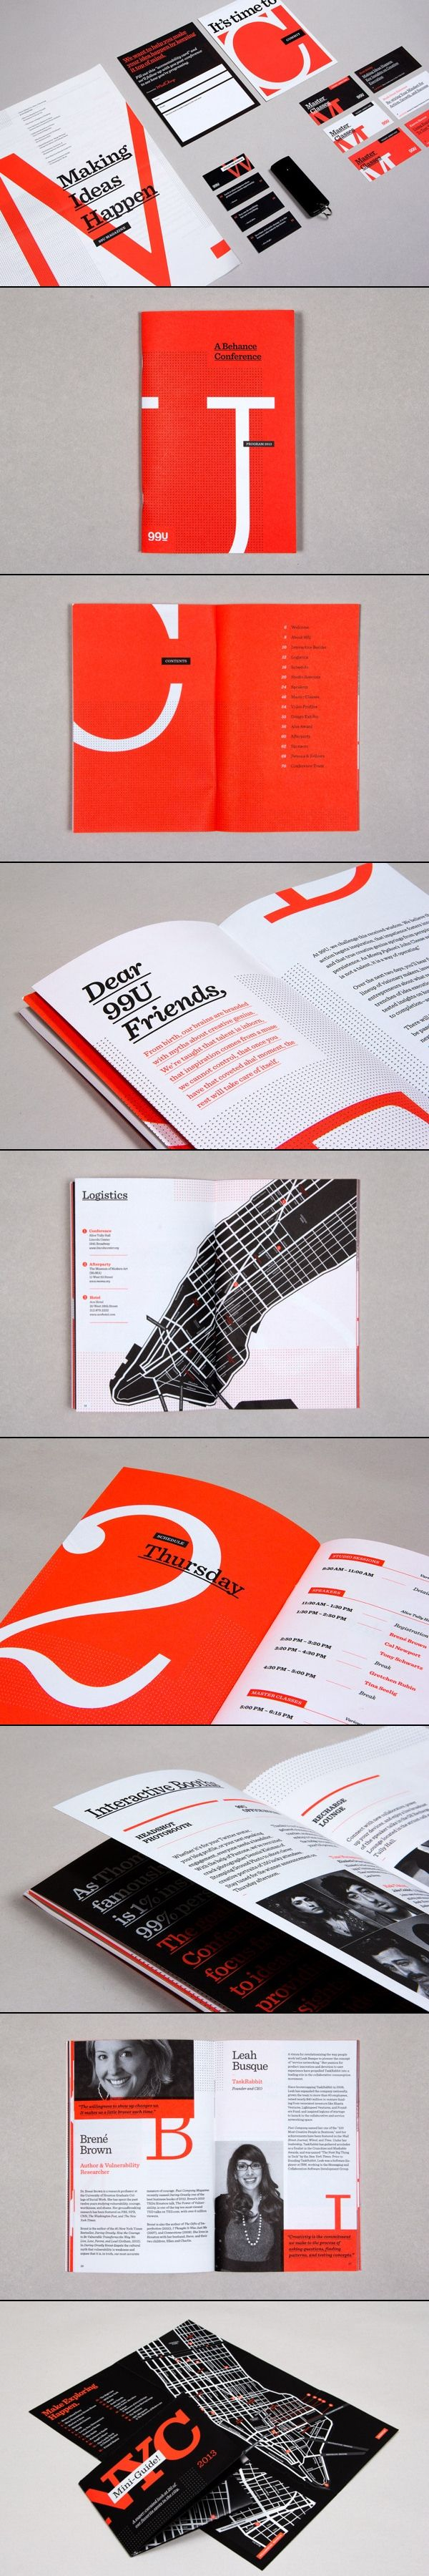 Conference branding on Behance